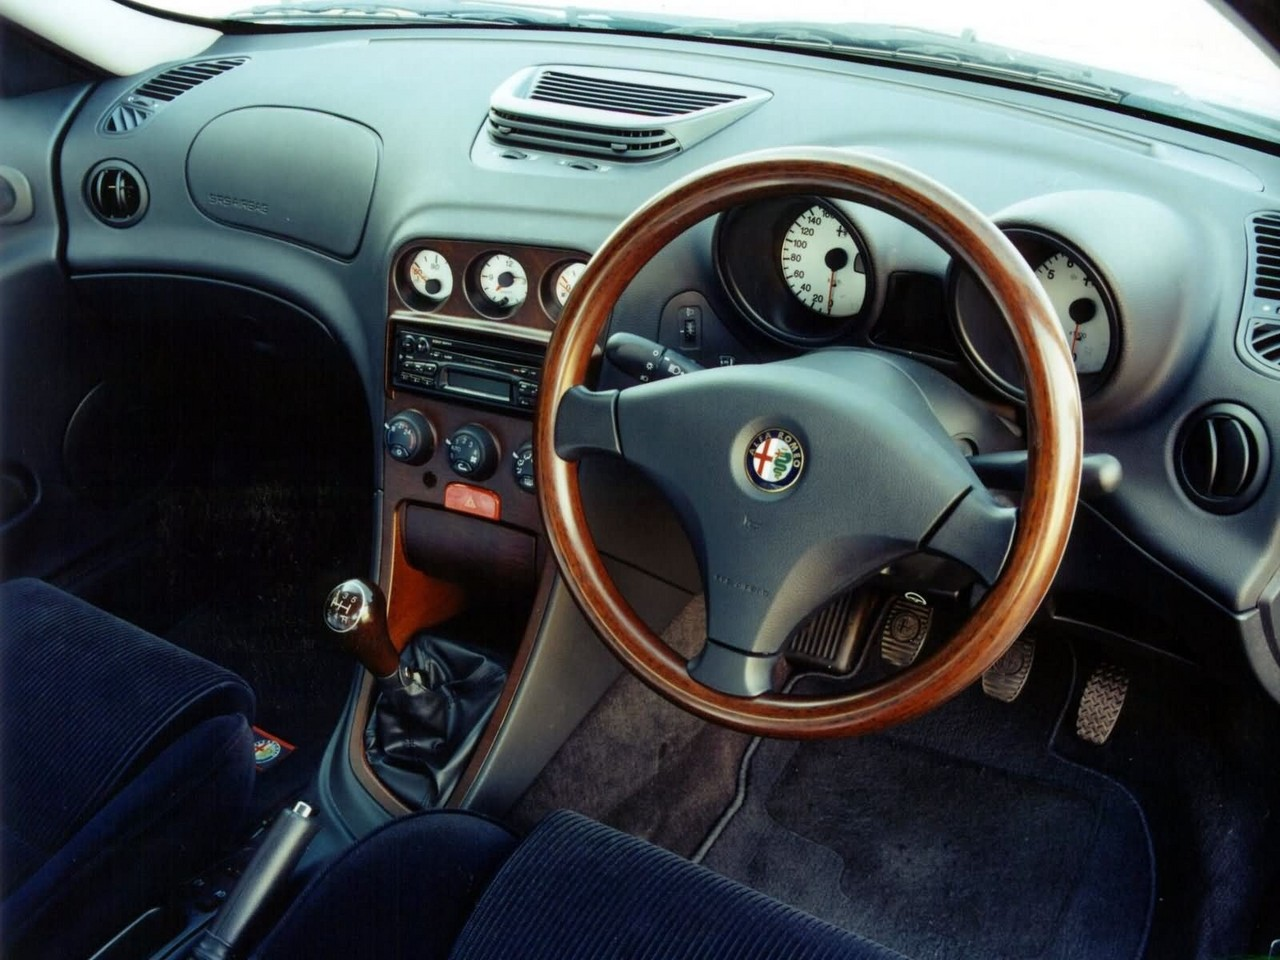 Images: Alfa Romeo 156 sedan (1999-06)